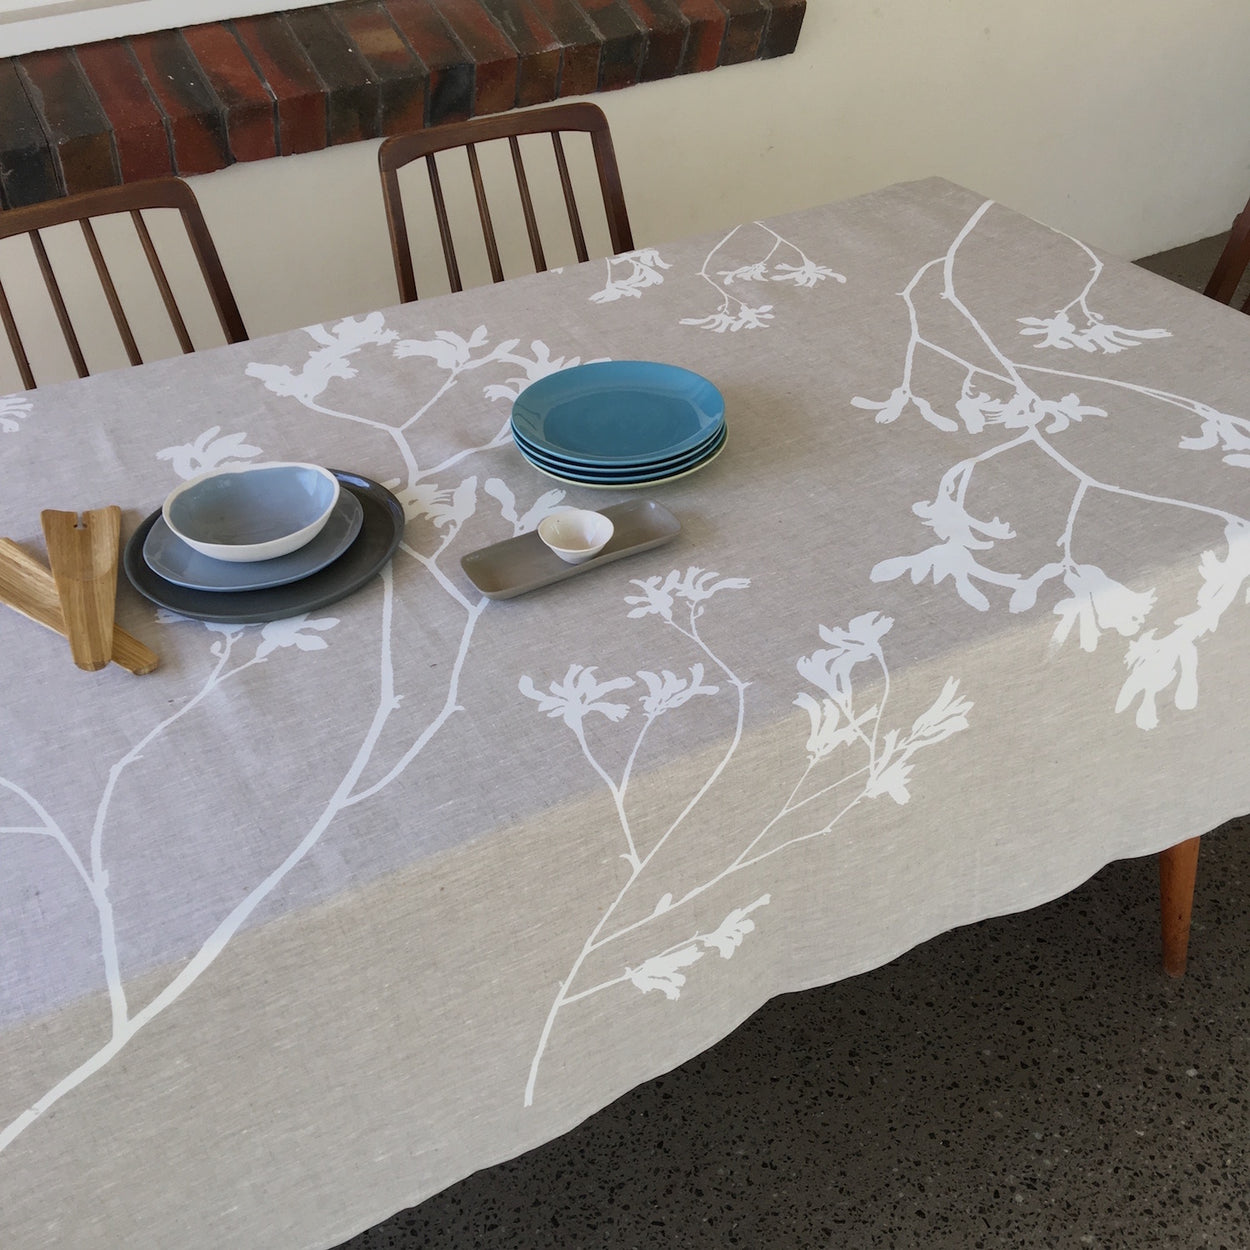 Photo of screenprinted tablecloth depicting kangaroo paw plants.